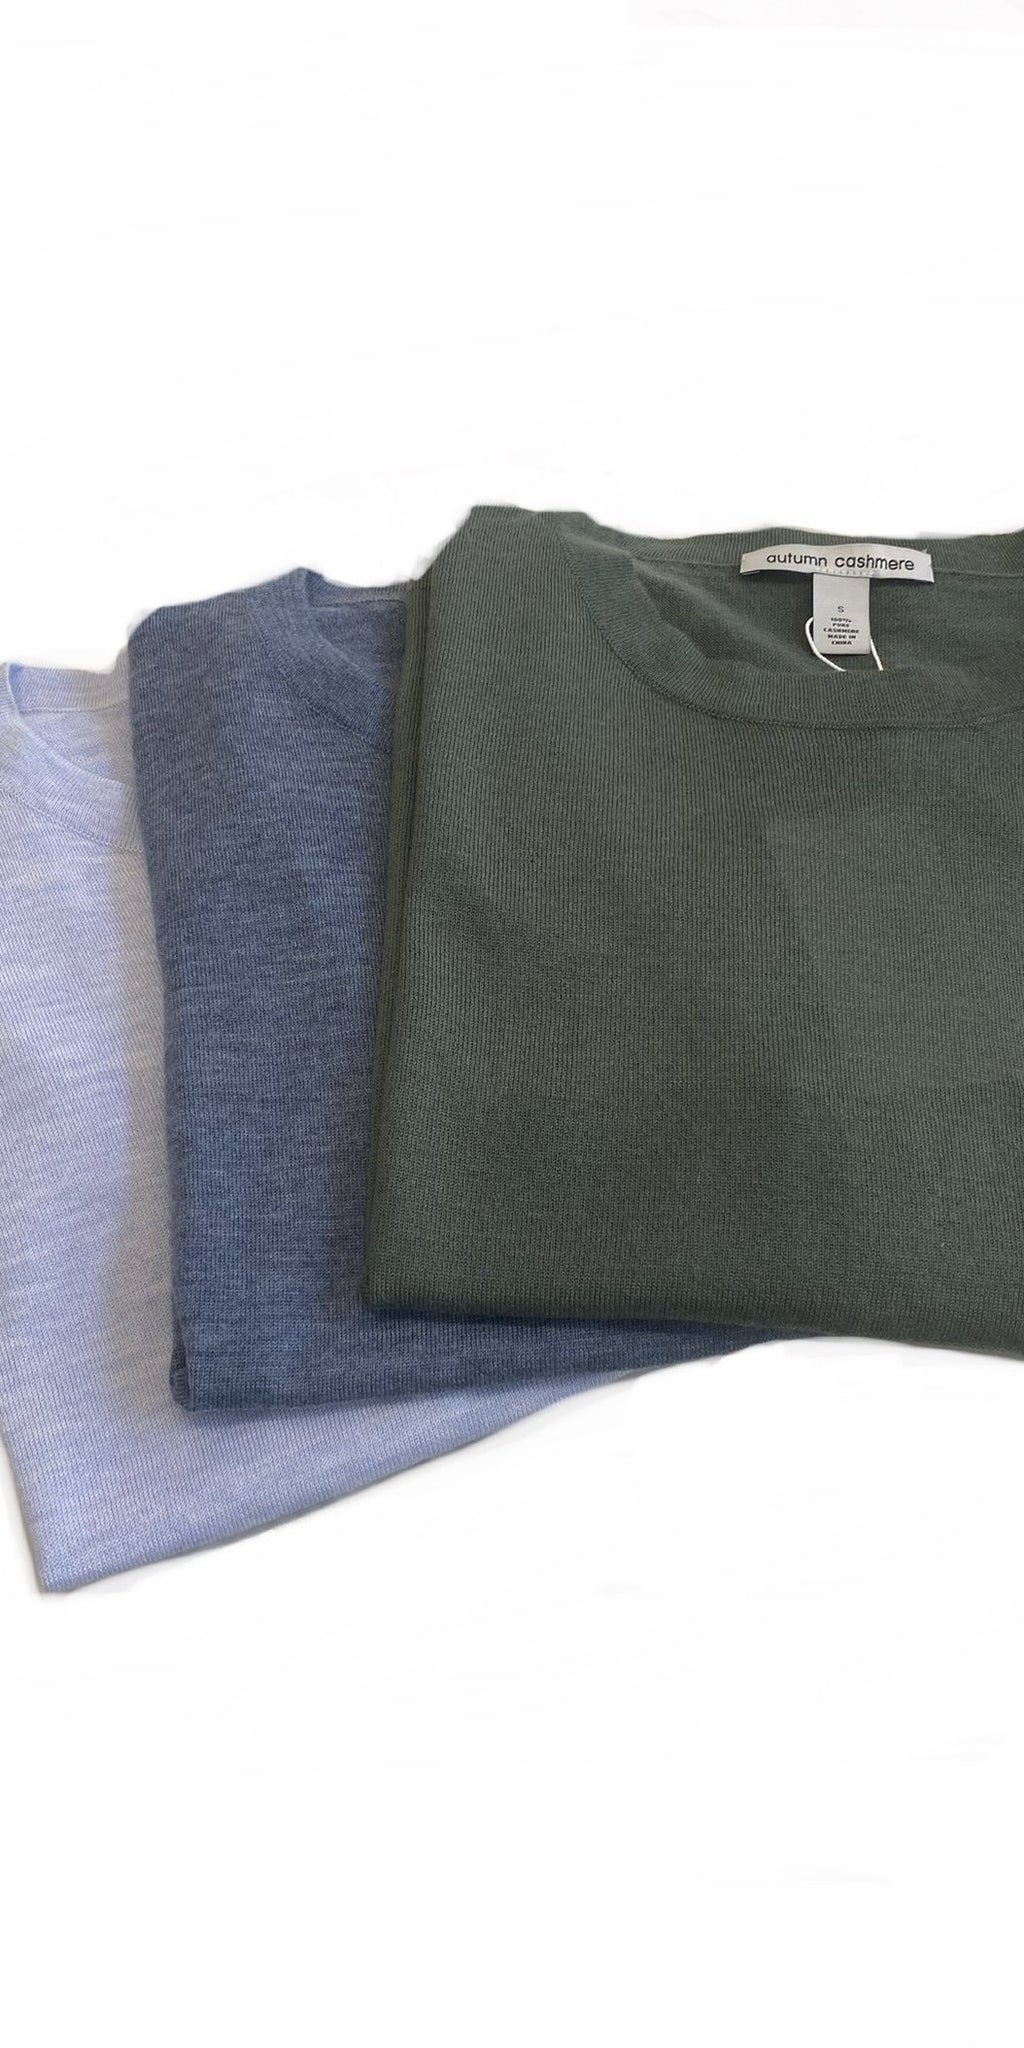 Cashmere Pocket Tee-Sea Biscuit Del Mar